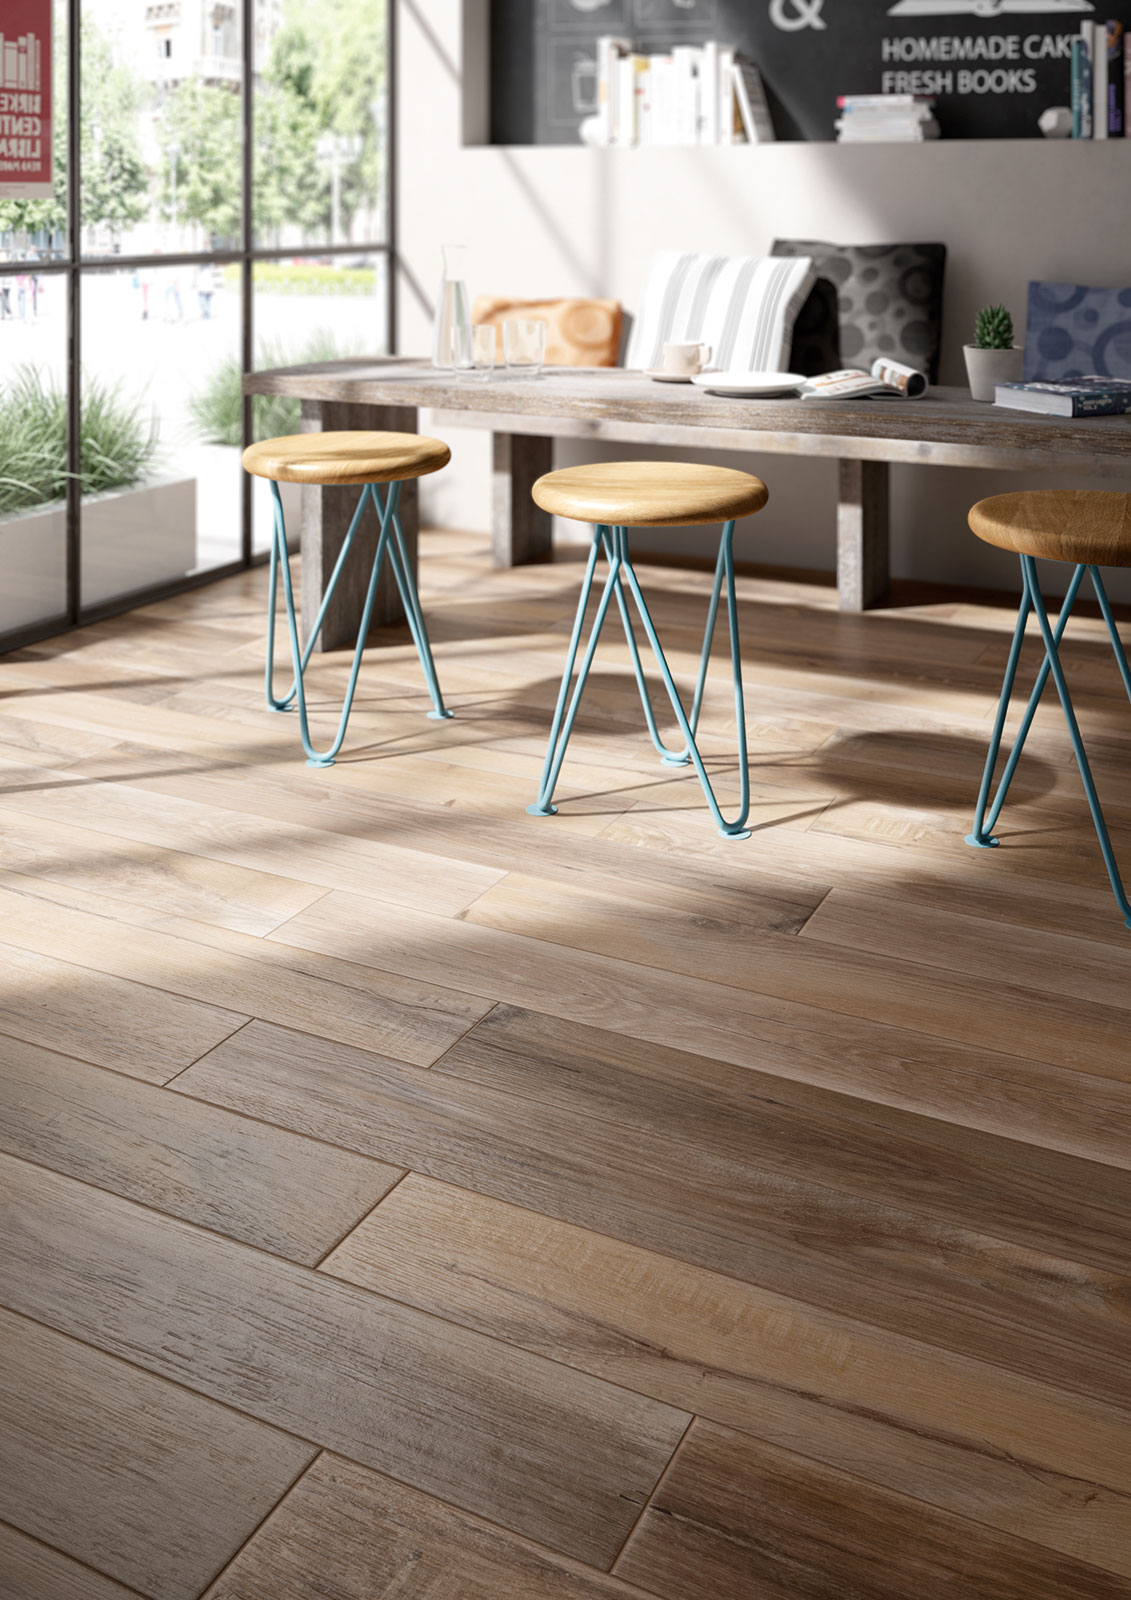 Carrelage imitation plancher bois 28 images le for Carrelage 01